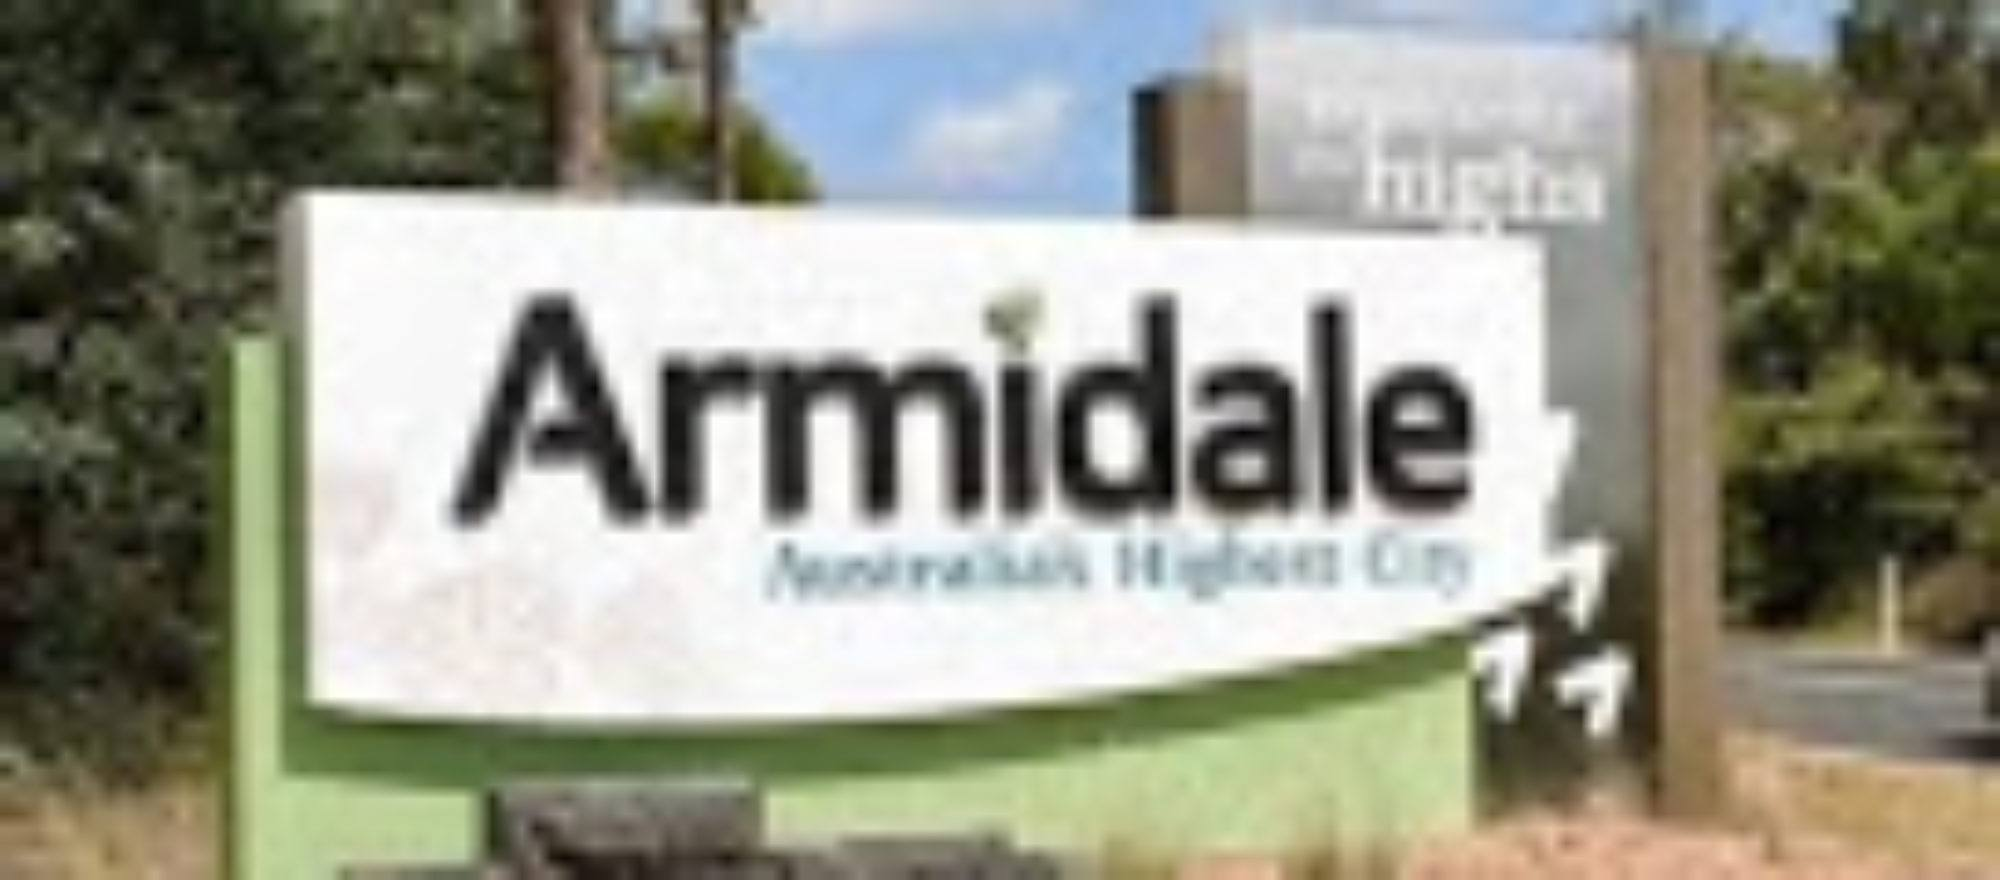 Armidale, next stop for driverless vehicles in NSW